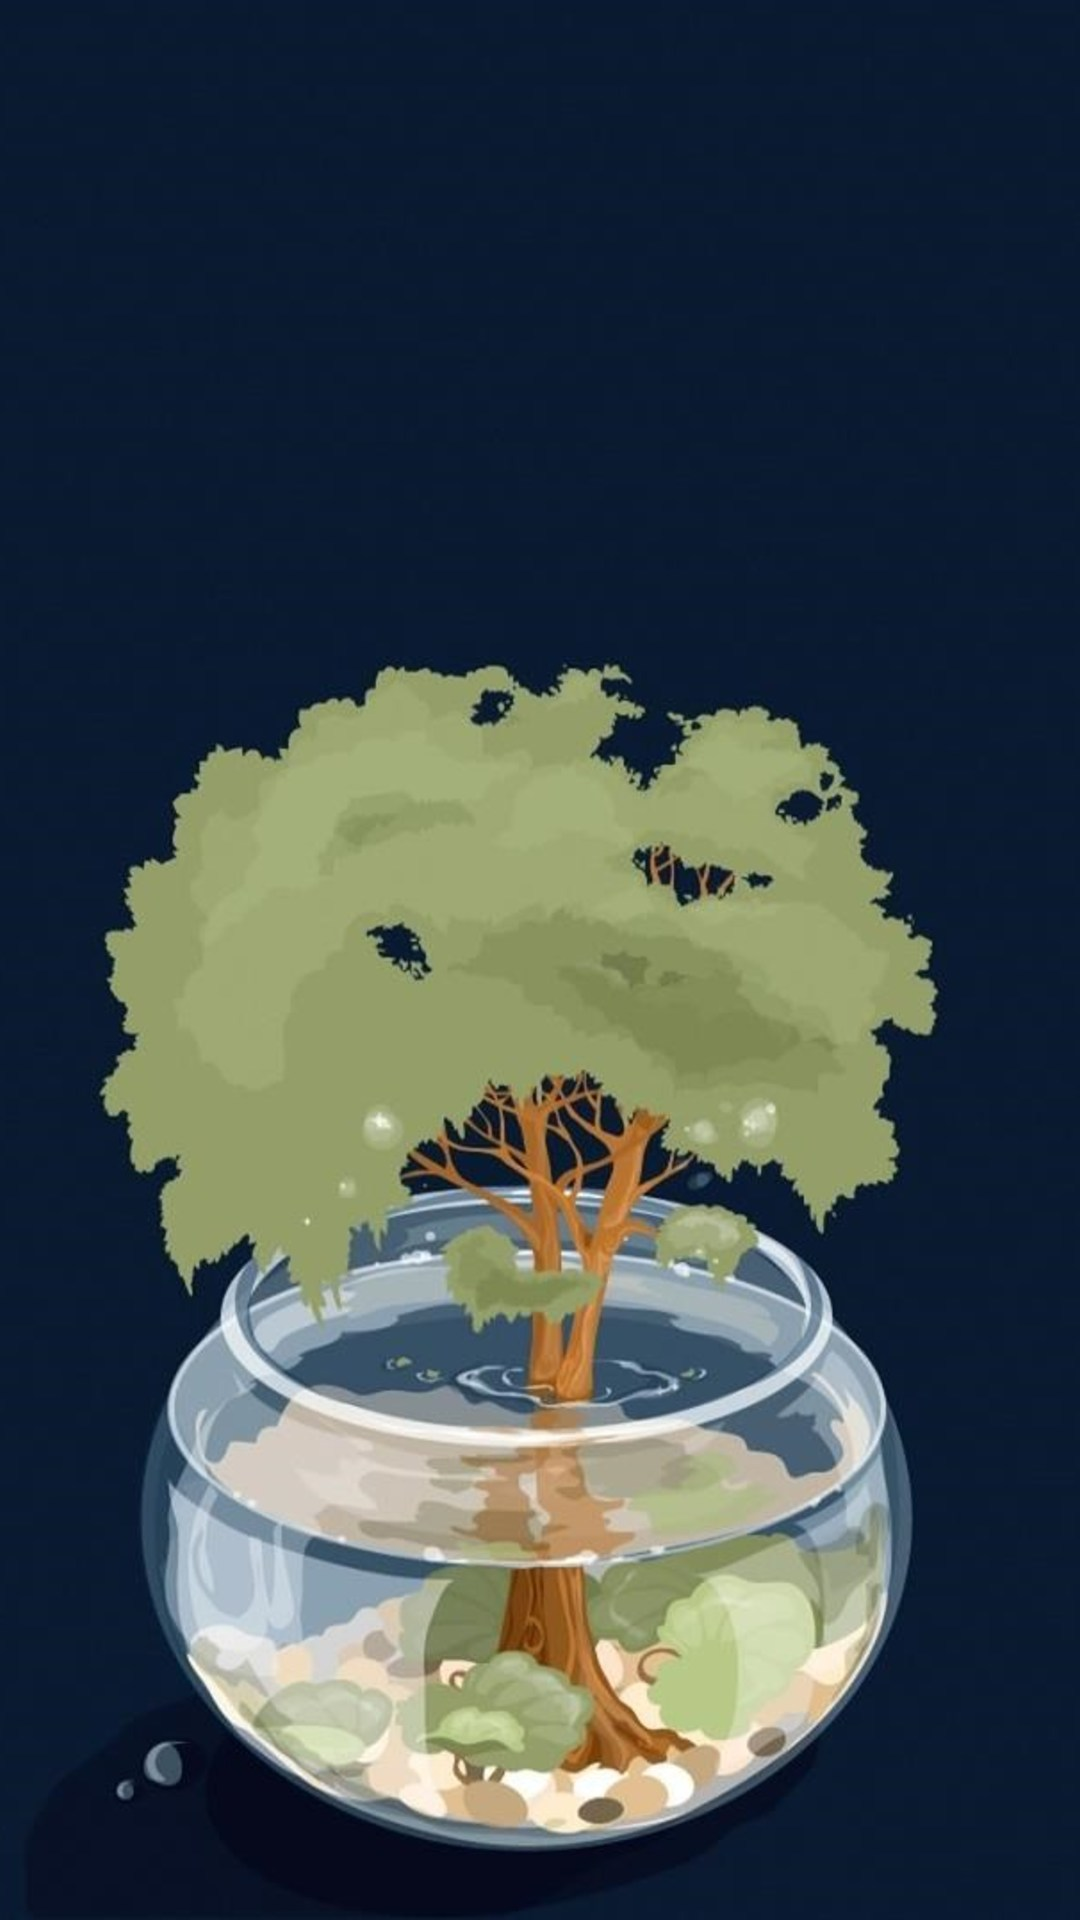 Save Trees Artwork Qhd Wallpaper – [1080×1920]